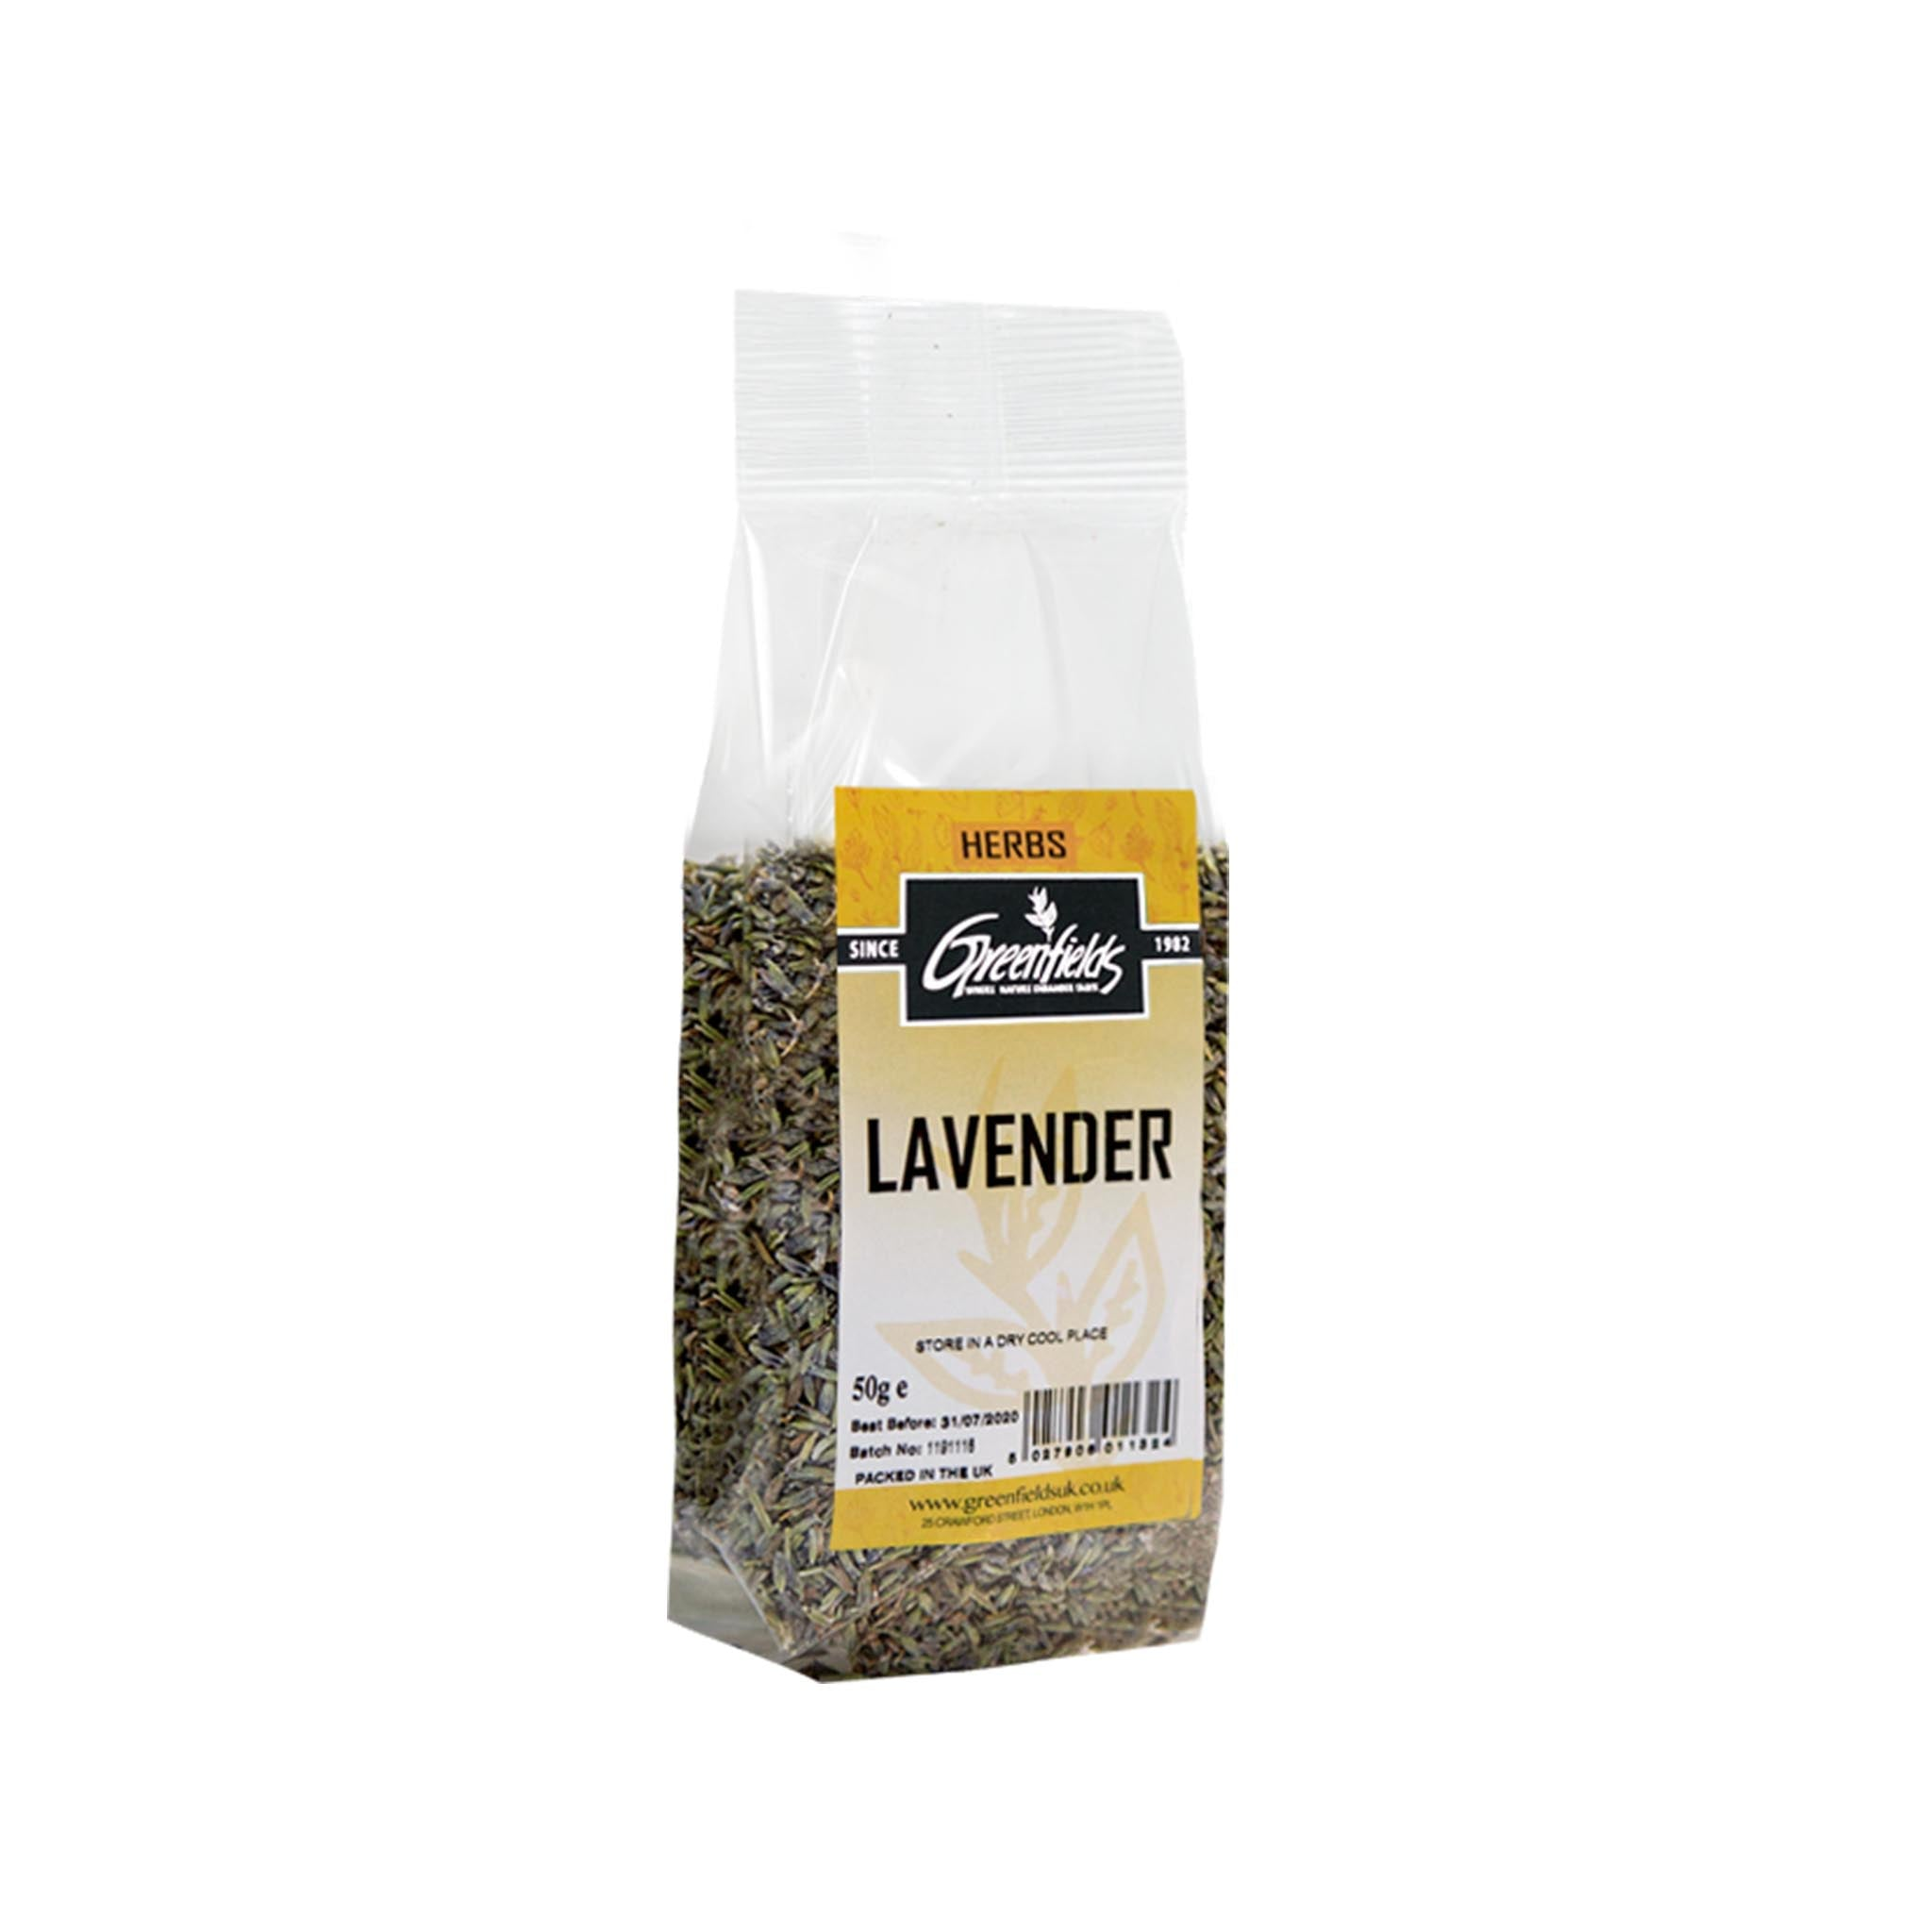 Greenfields Lavender Ingredients Baking Ingredients Baking Edible Flowers